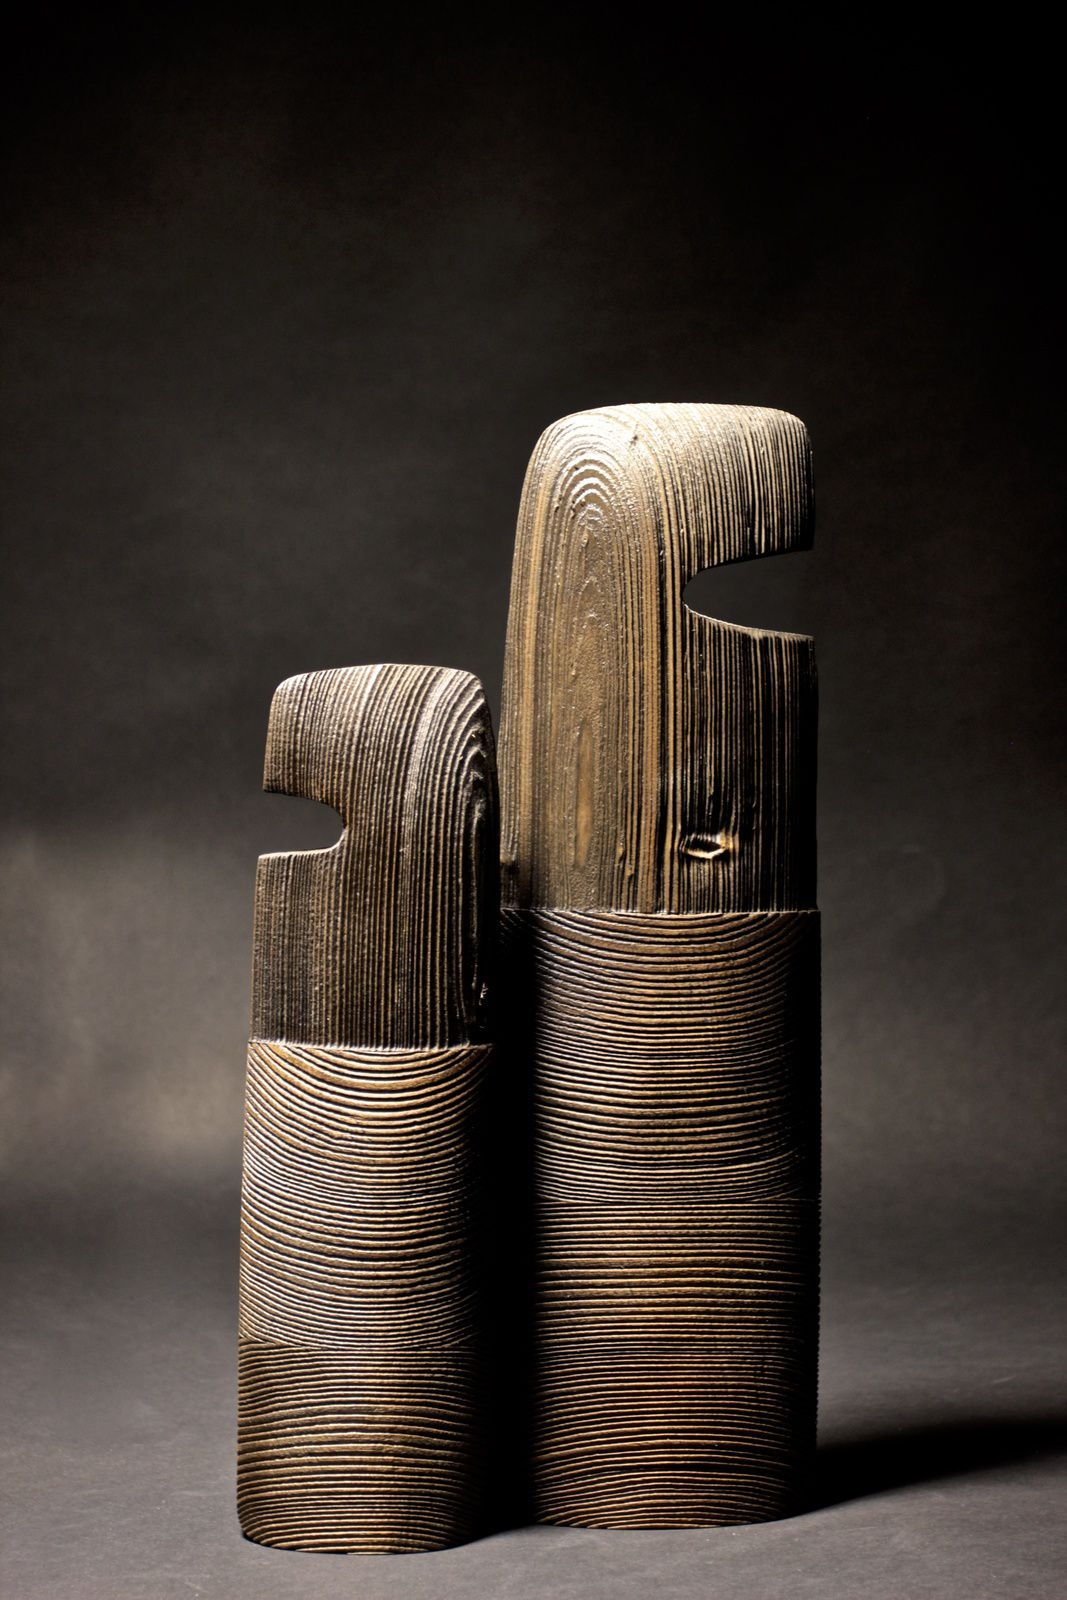 sculptures de Thierry Martenon